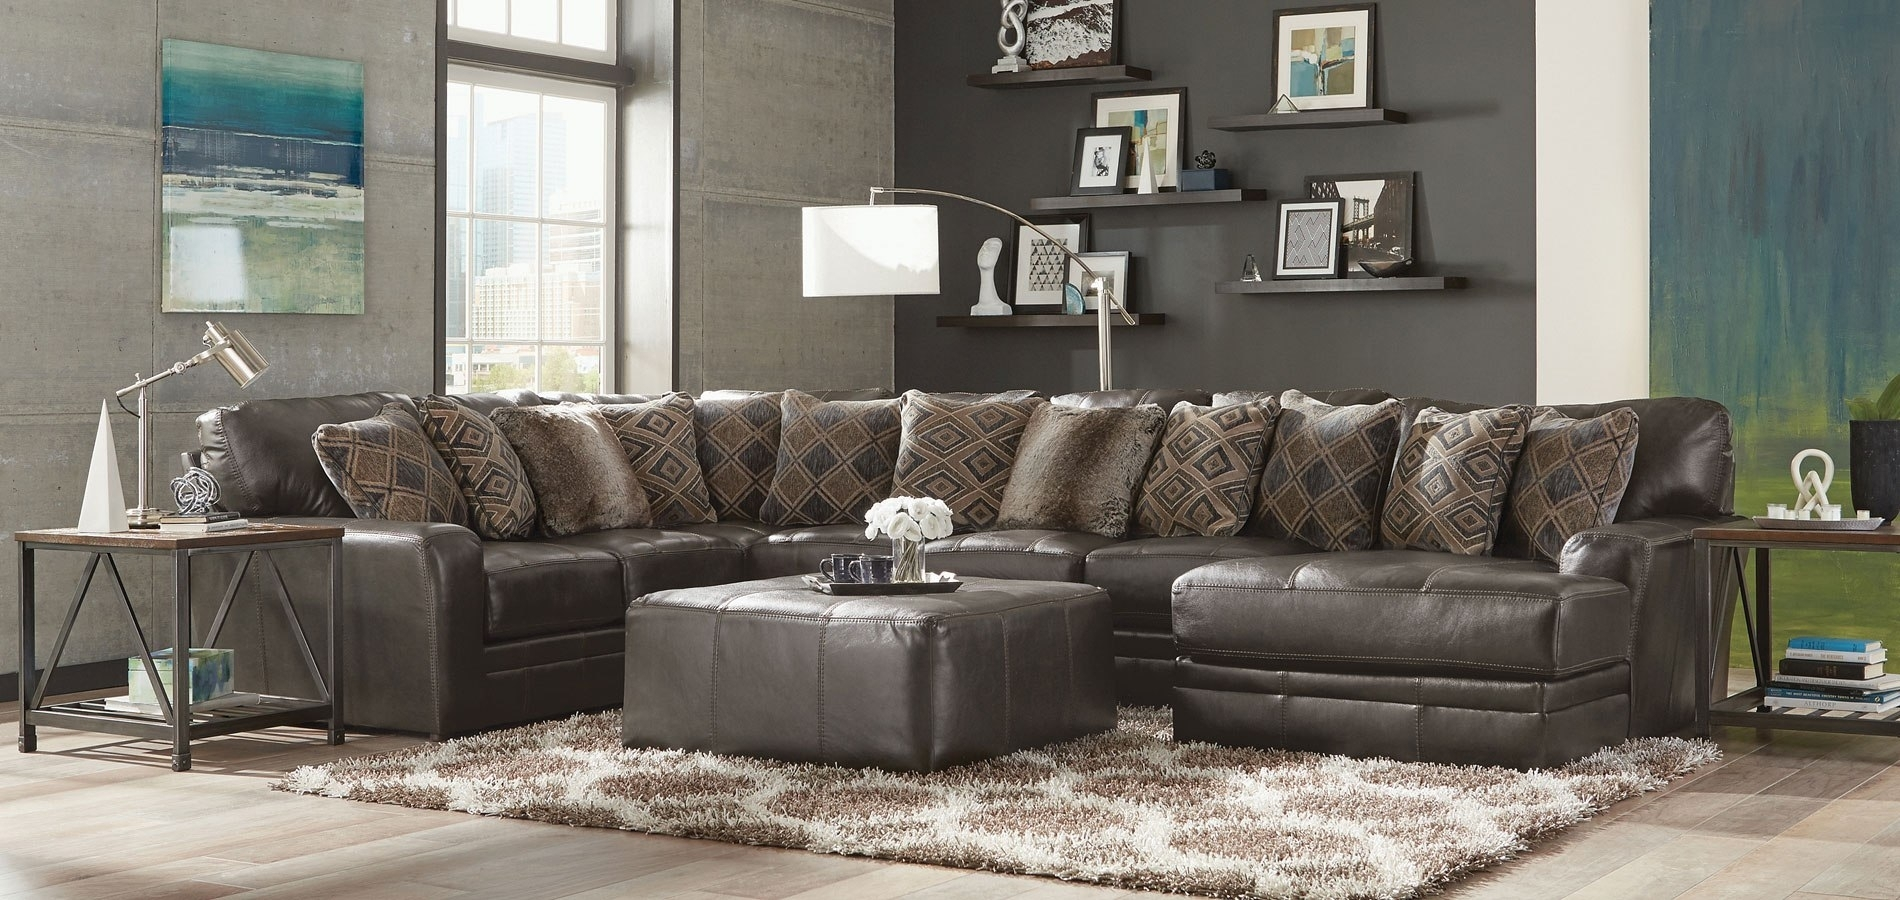 Denali Modular Sectional (Steel) Jackson Furniture | Furniture Cart For Denali Charcoal Grey 6 Piece Reclining Sectionals With 2 Power Headrests (View 13 of 25)